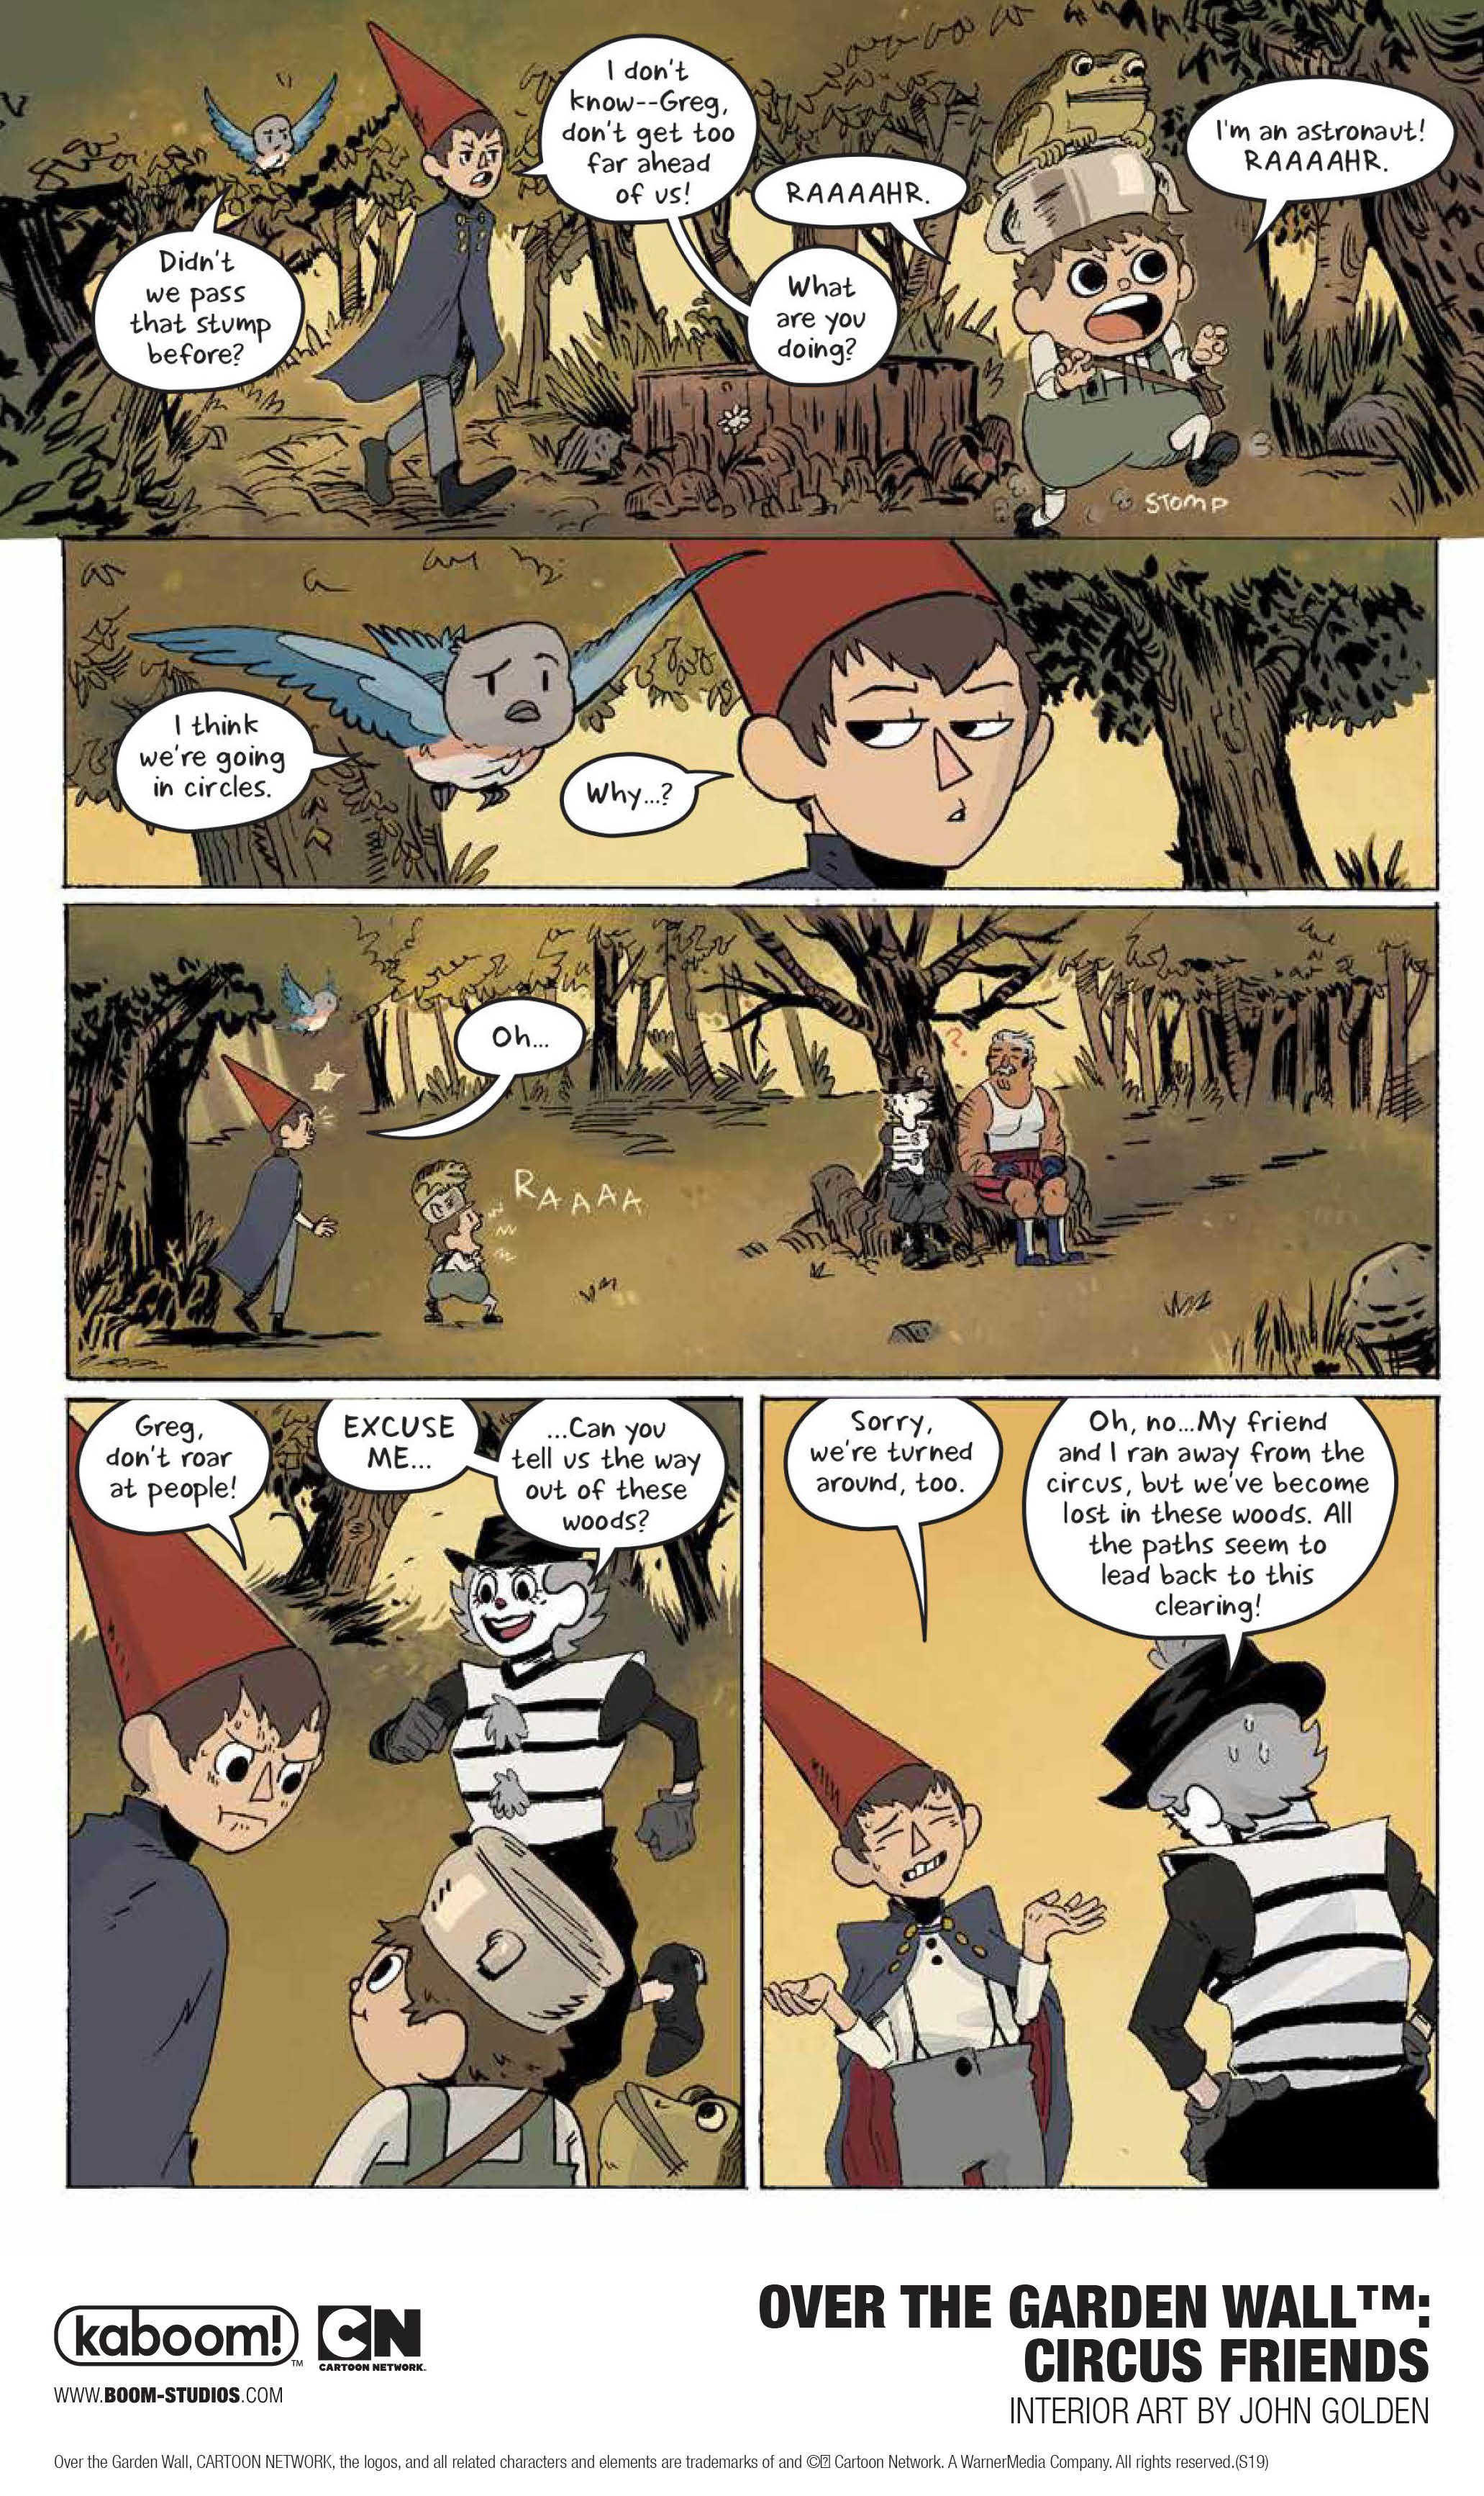 Over the Garden Wall: Circus Friends preview